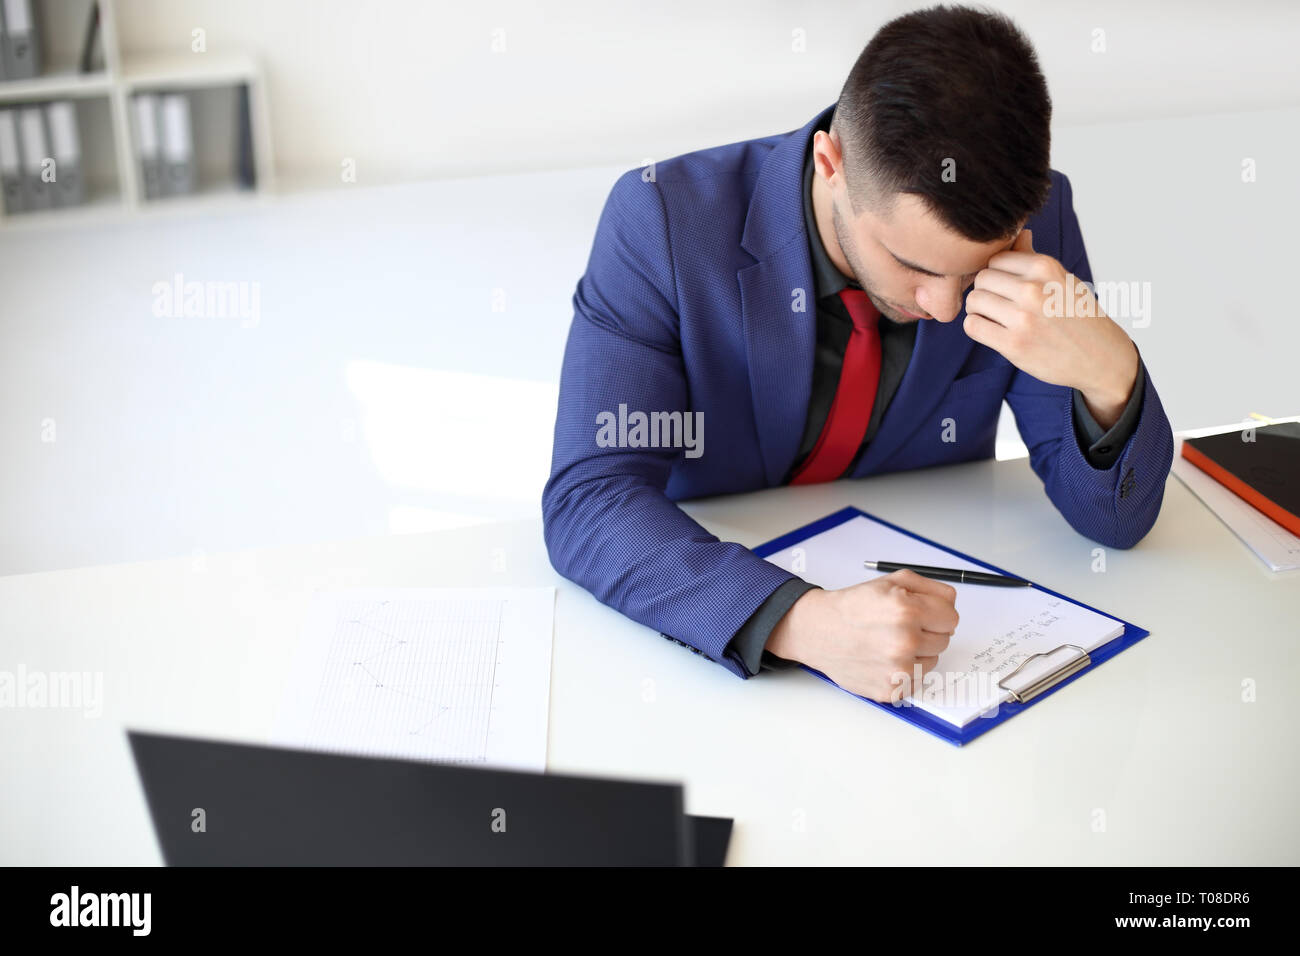 Tired and stressful businessman at work. Depression concept - Stock Image